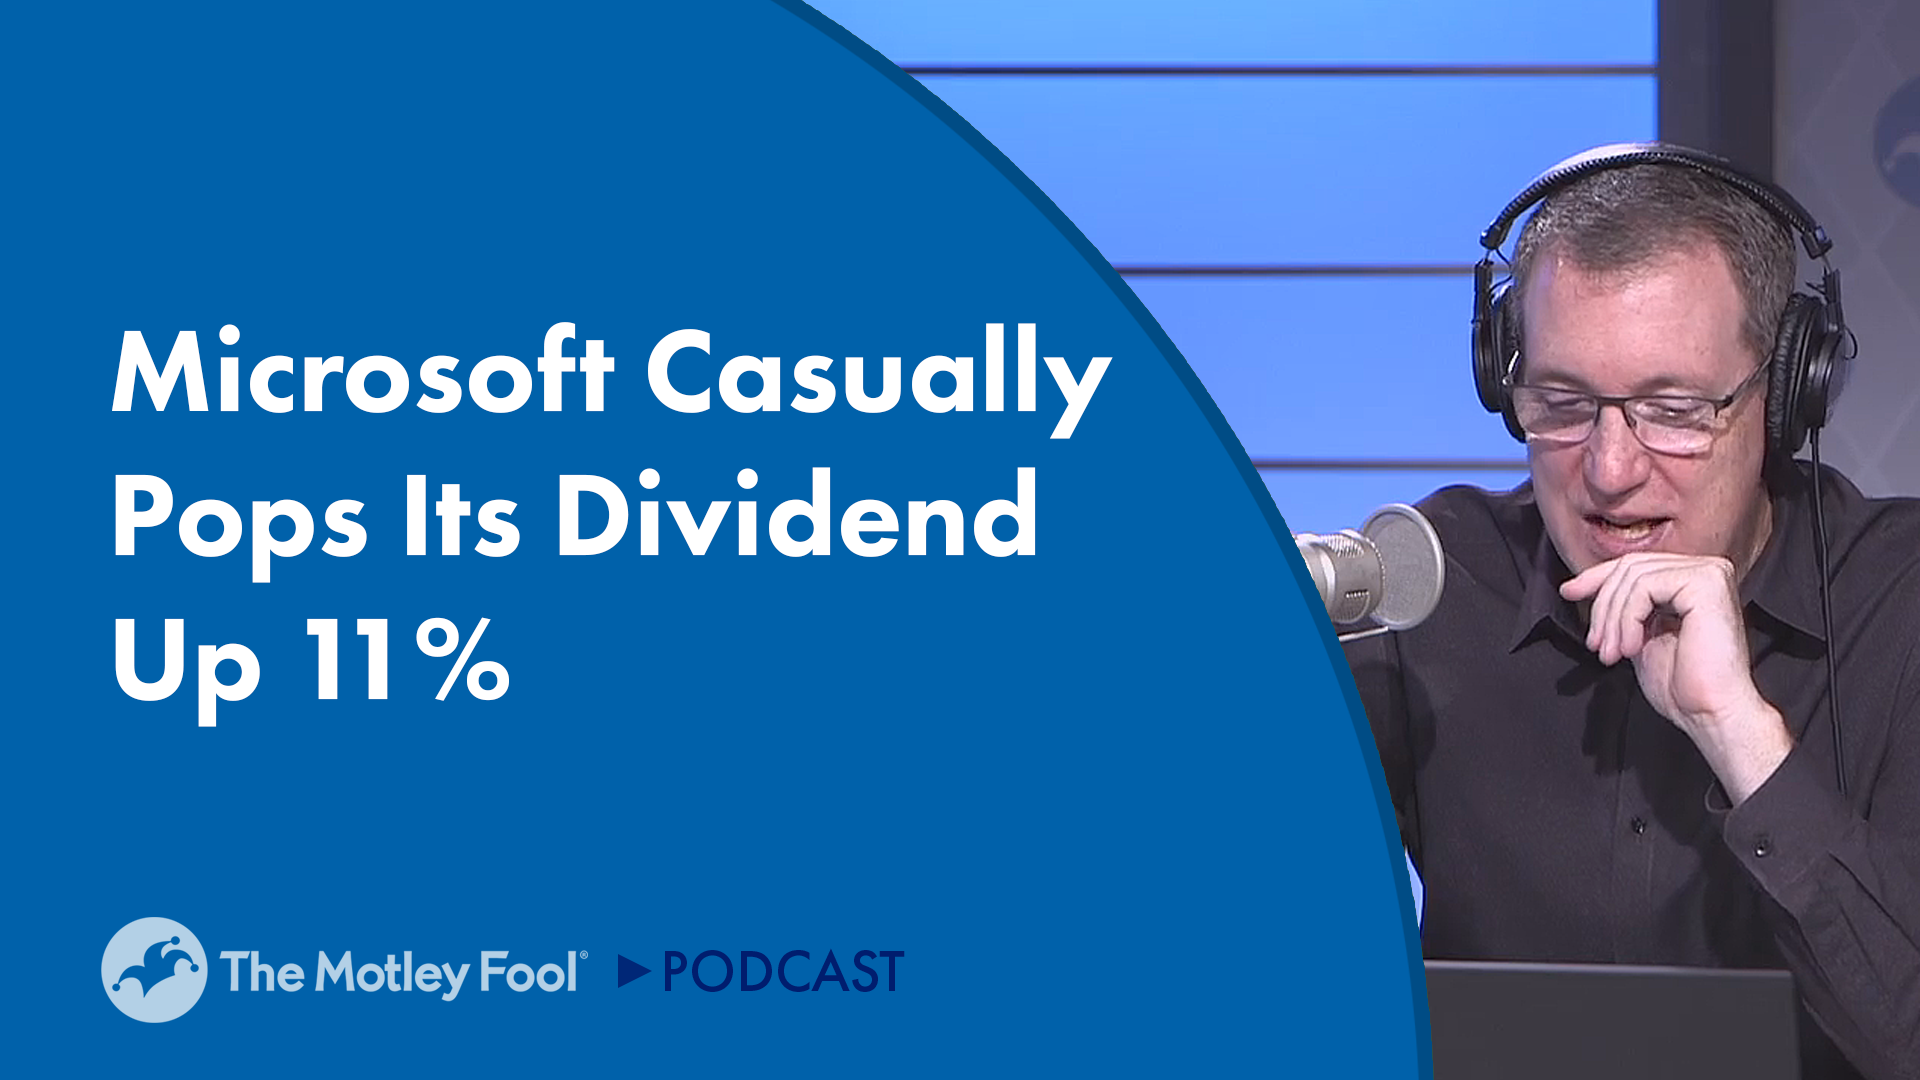 Microsoft Casually Pops Its Dividend 11%